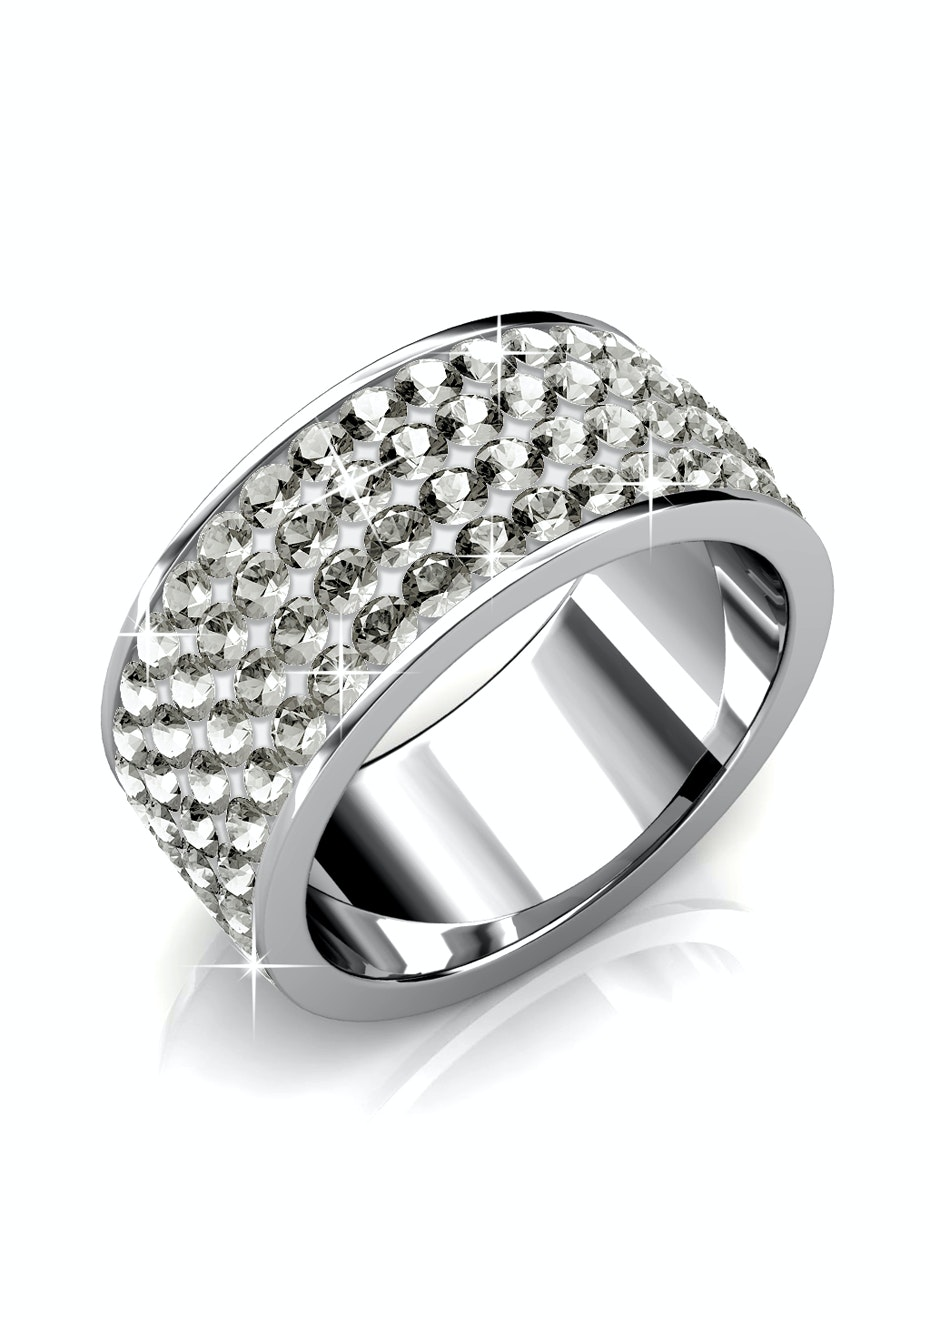 Premium Ring Embellished with Crystals from Swarovski